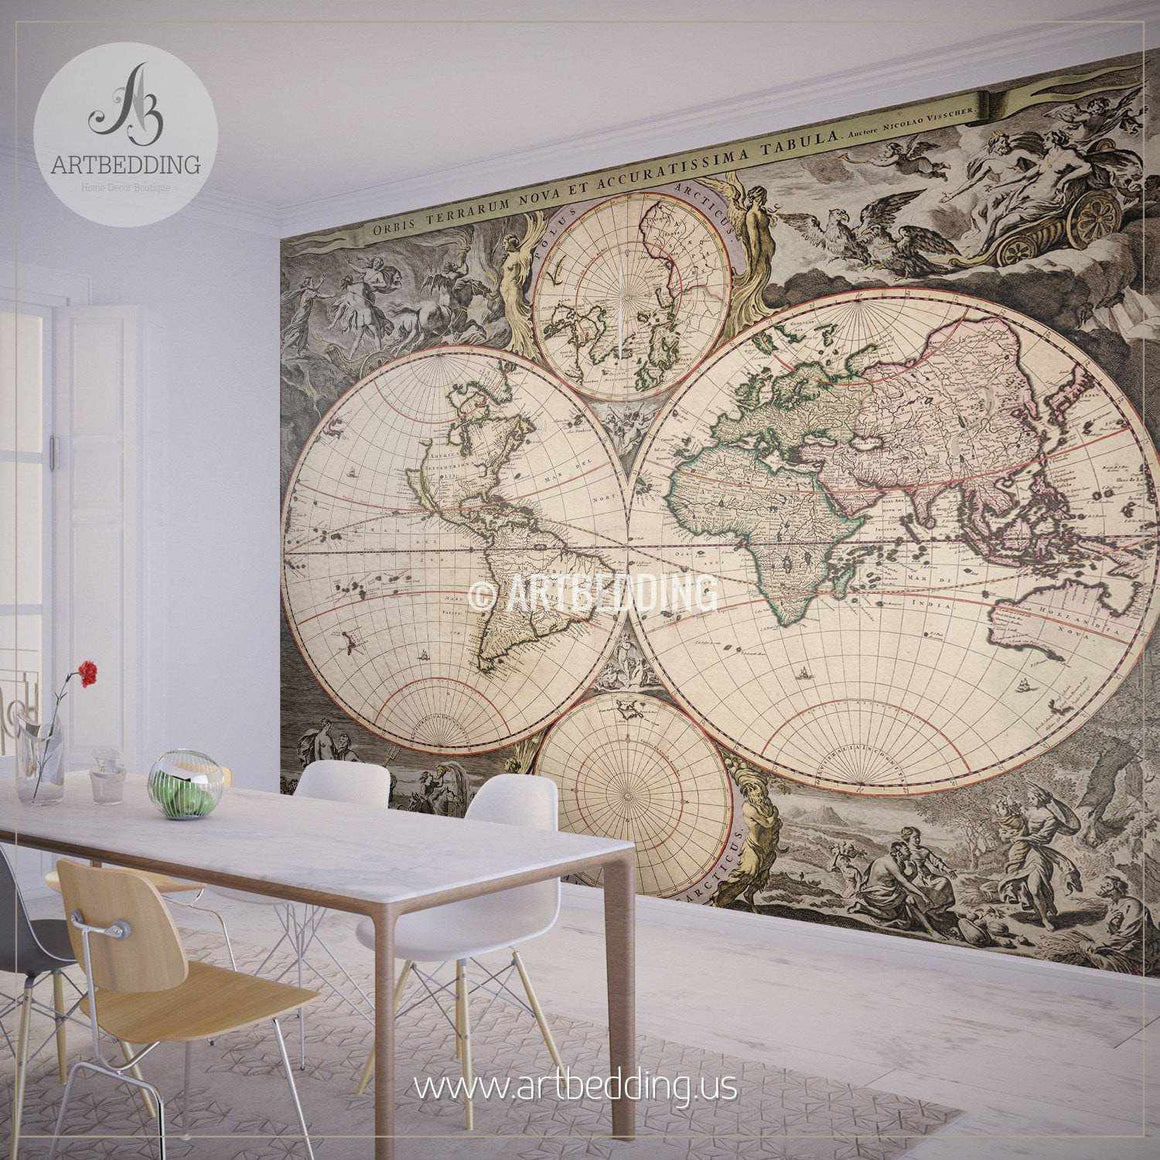 Vintage Hemisphere  Map Wall Mural, Self Adhesive Peel & Stick Photo Mural, Atlas wall mural, mural home decor wall mural